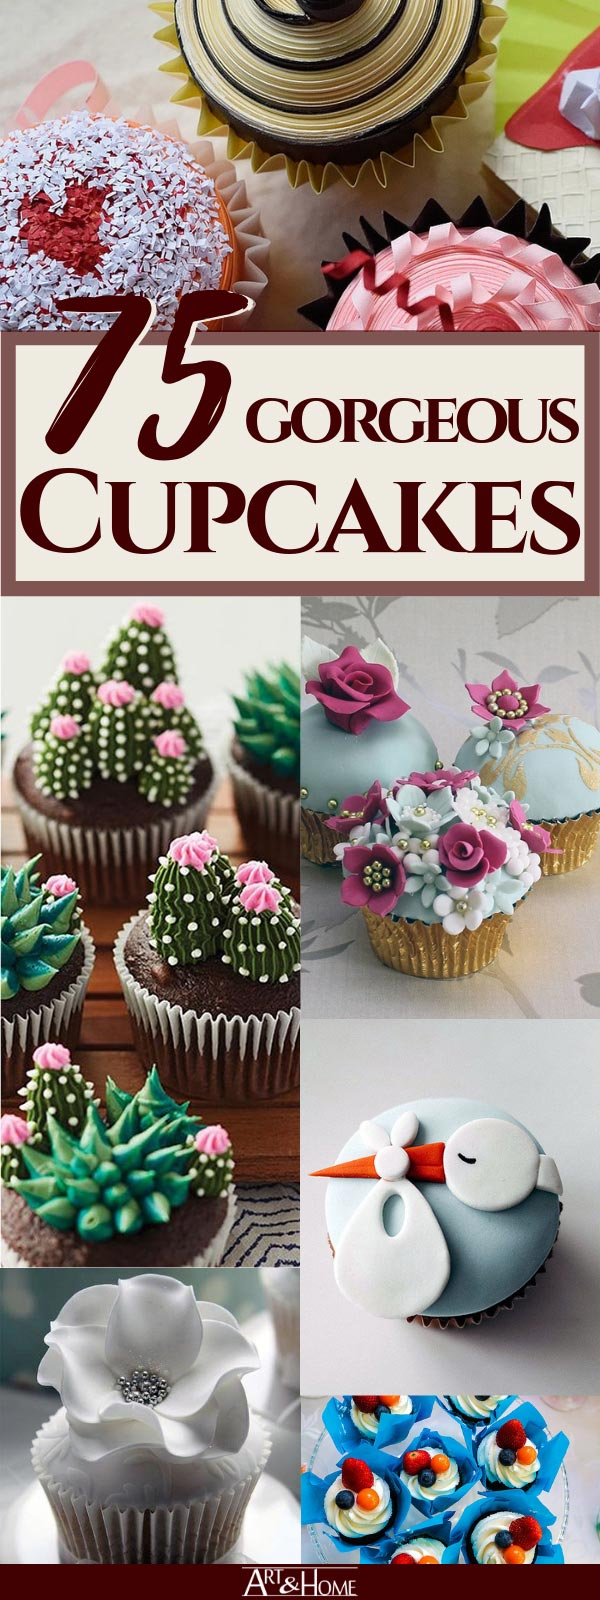 From deliciously decorated individual cupcakes, unique themed cupcake displays, to beautiful cupcake trees, there's a lot of sweet inspiration for the baker in your family.